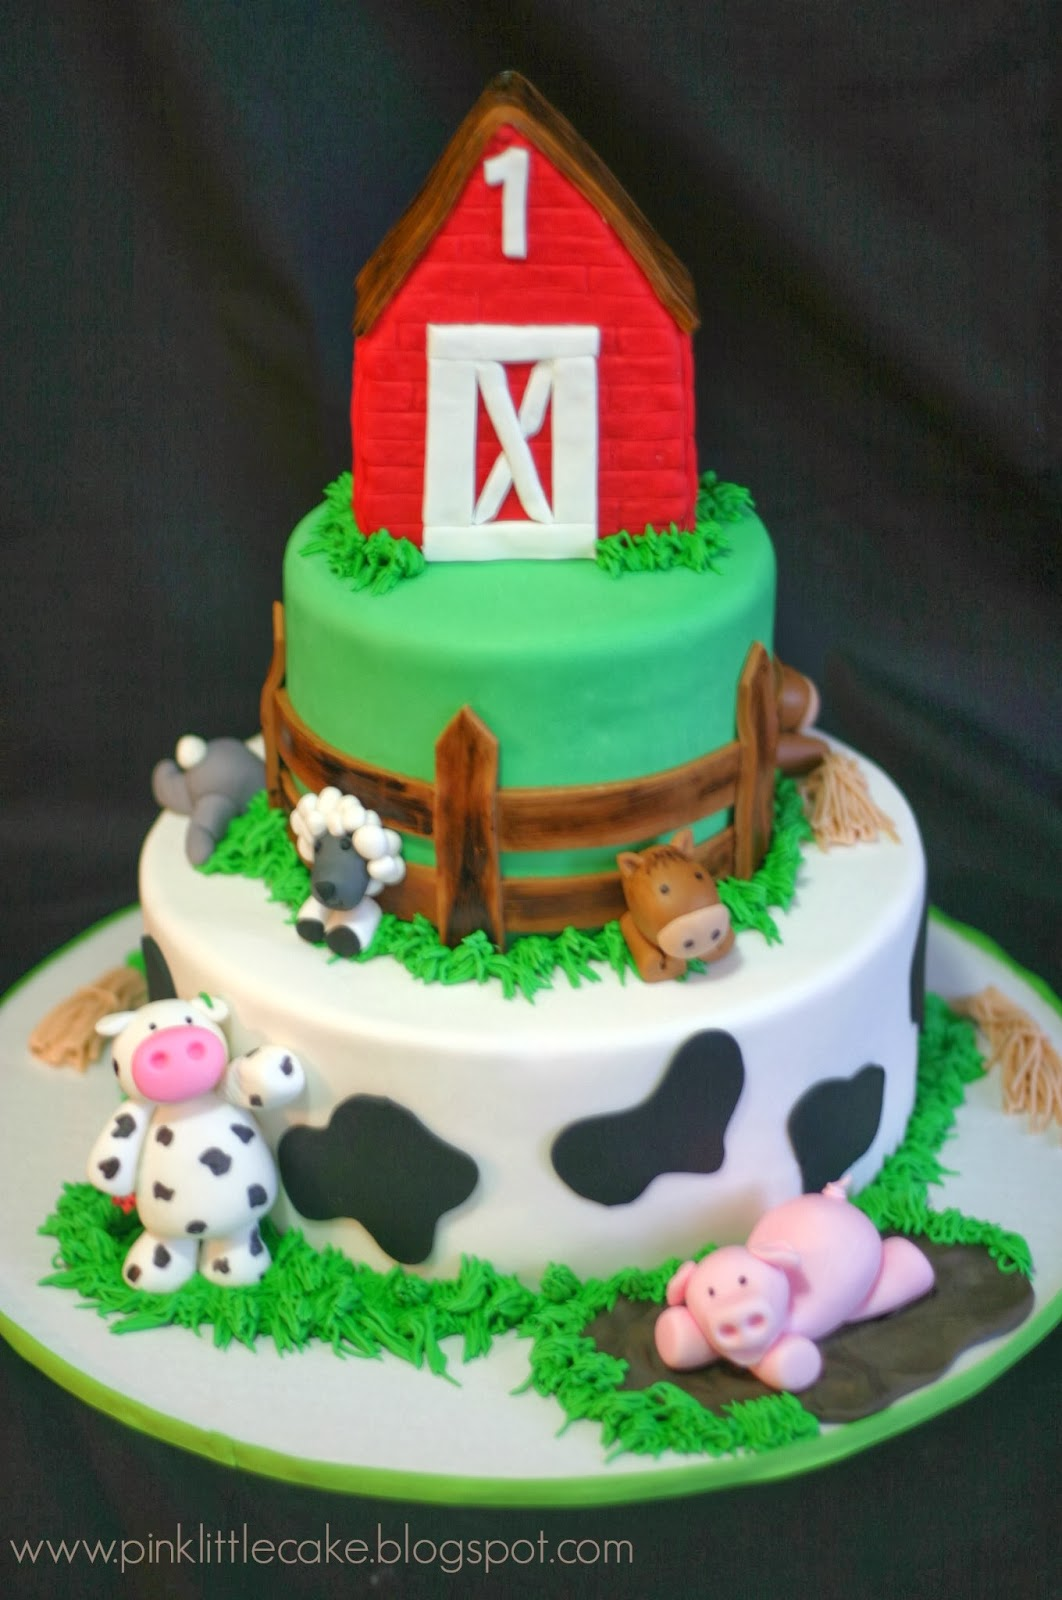 My Pink Little Cake Farm Theme Birthday Cake